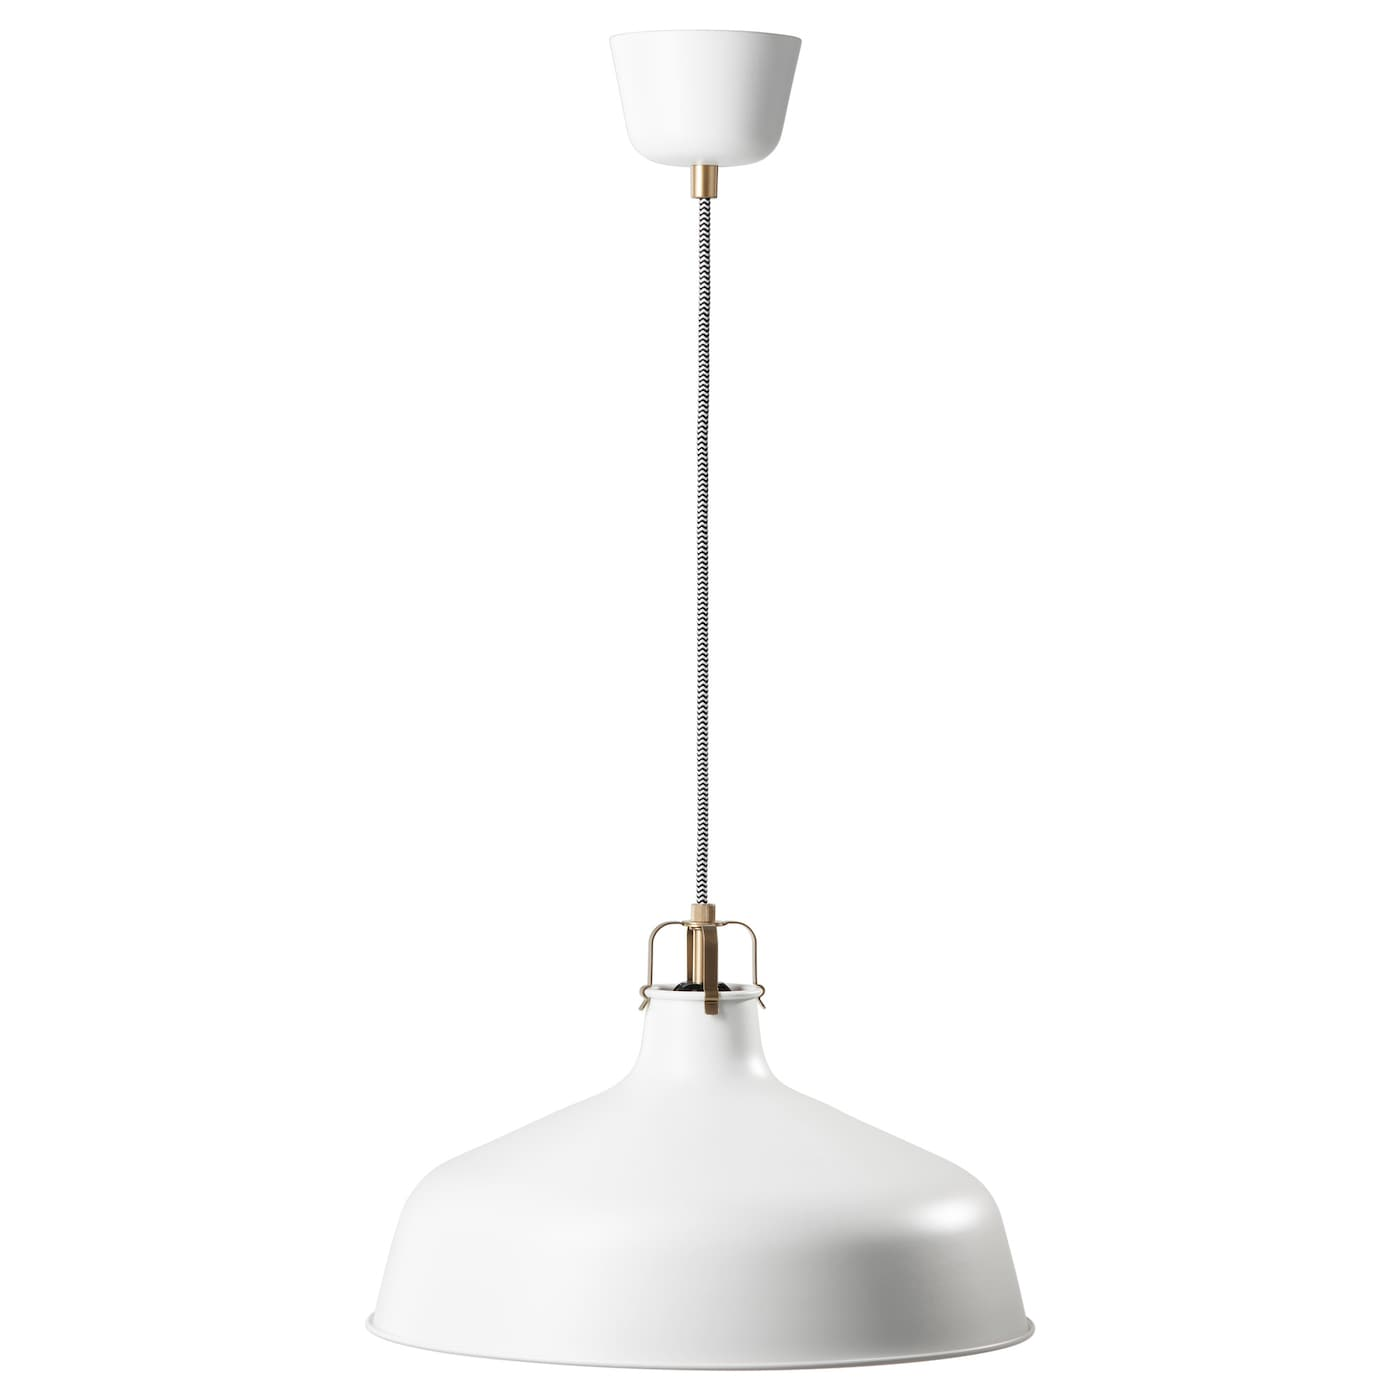 white pendant lighting. Fine White IKEA RANARP Pendant Lamp Intended White Pendant Lighting